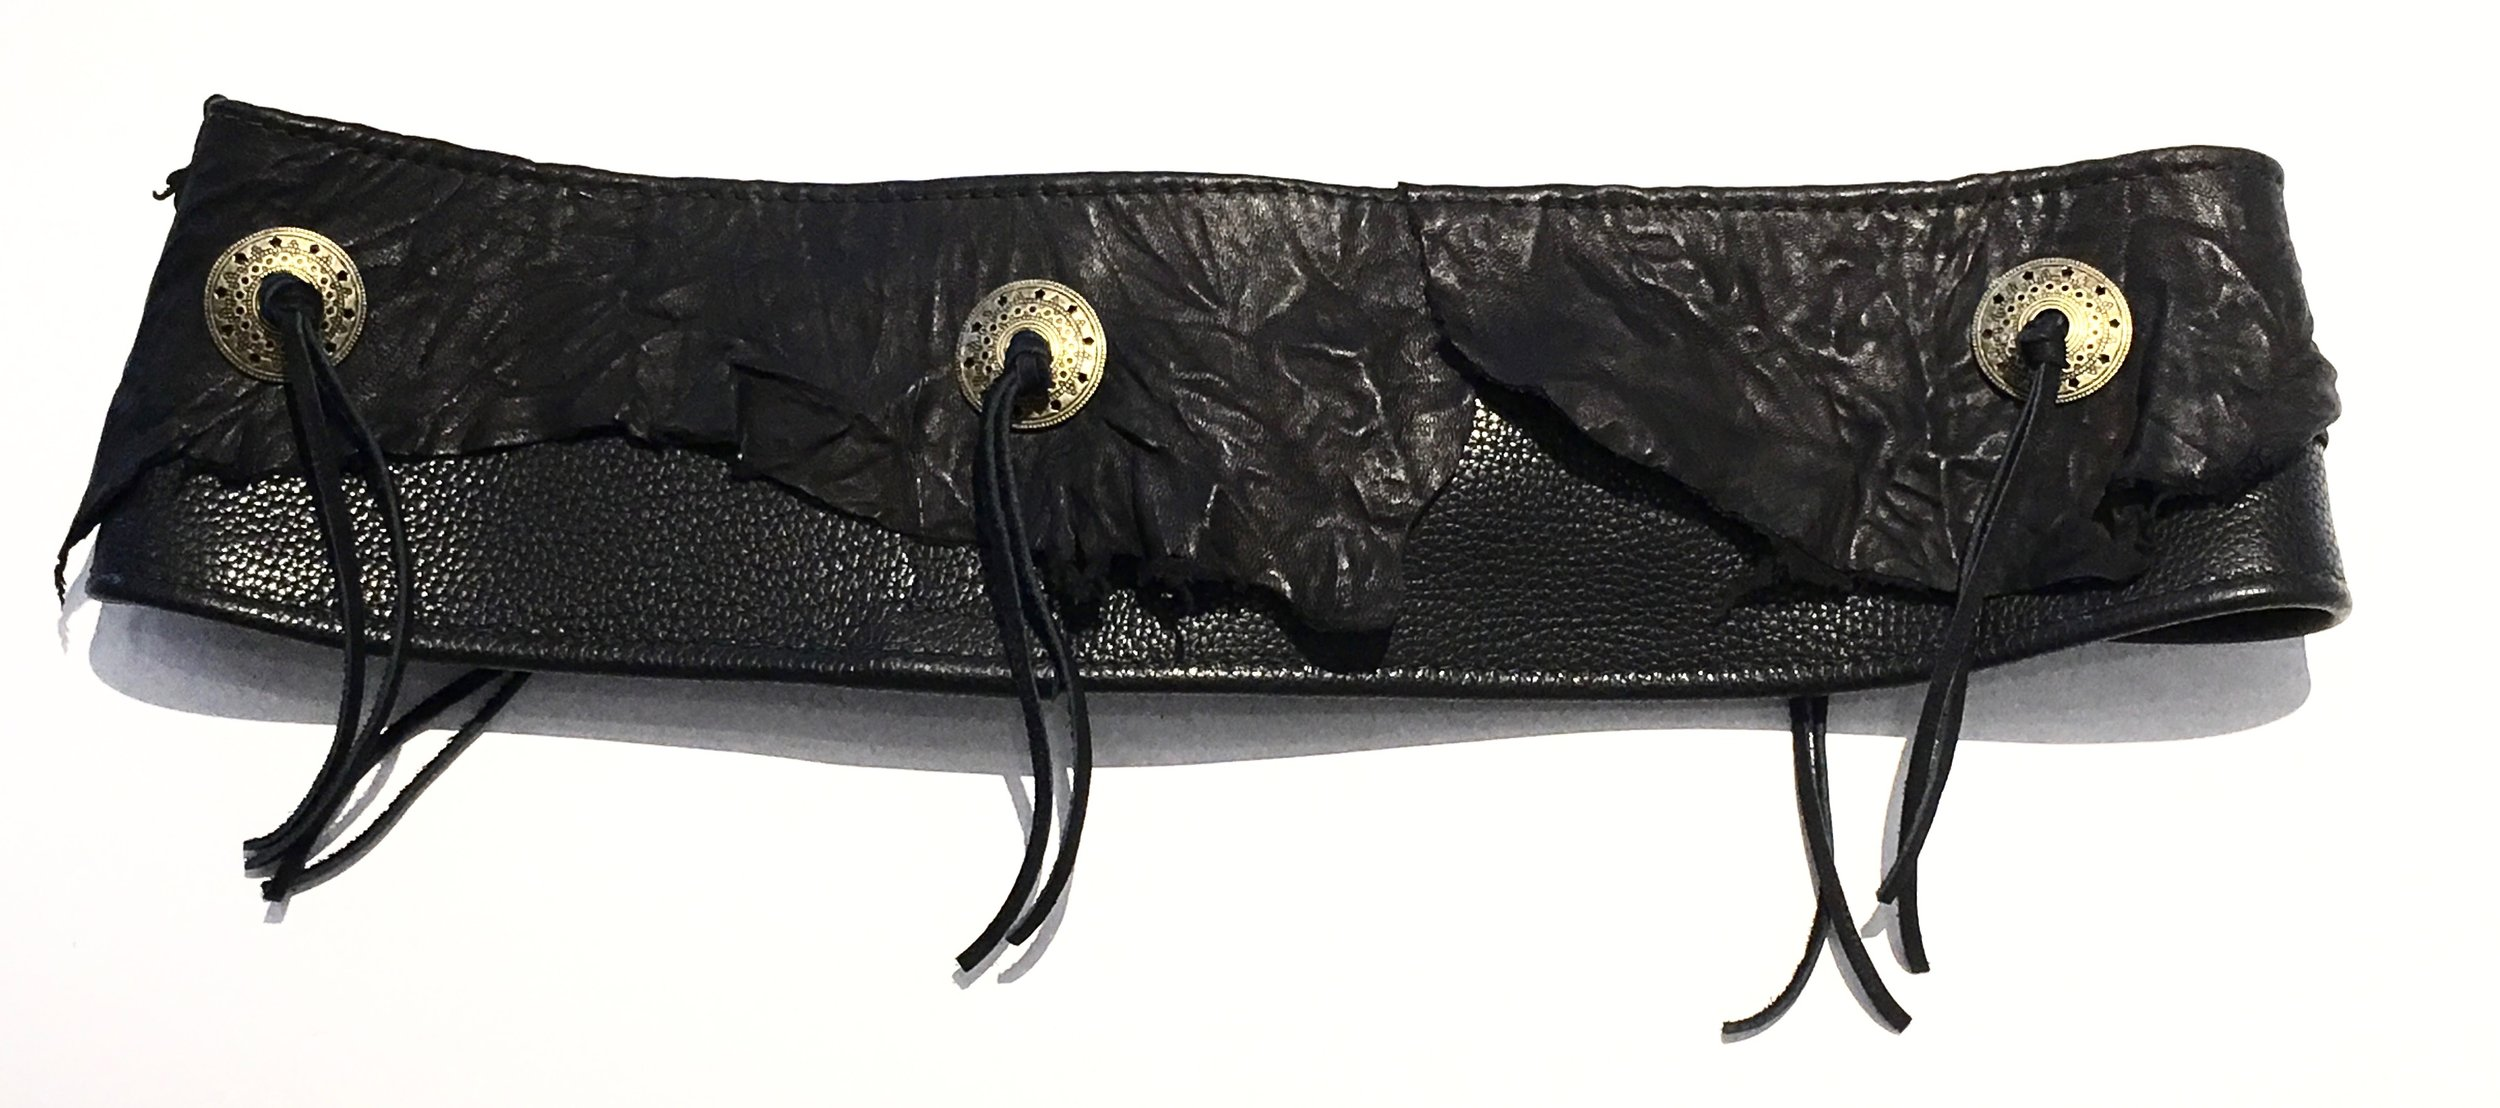 Black cowhide HipWear with Lamskin overlay and brass conchos. Brass ring with adjustable velcro closure. Back view..jpg